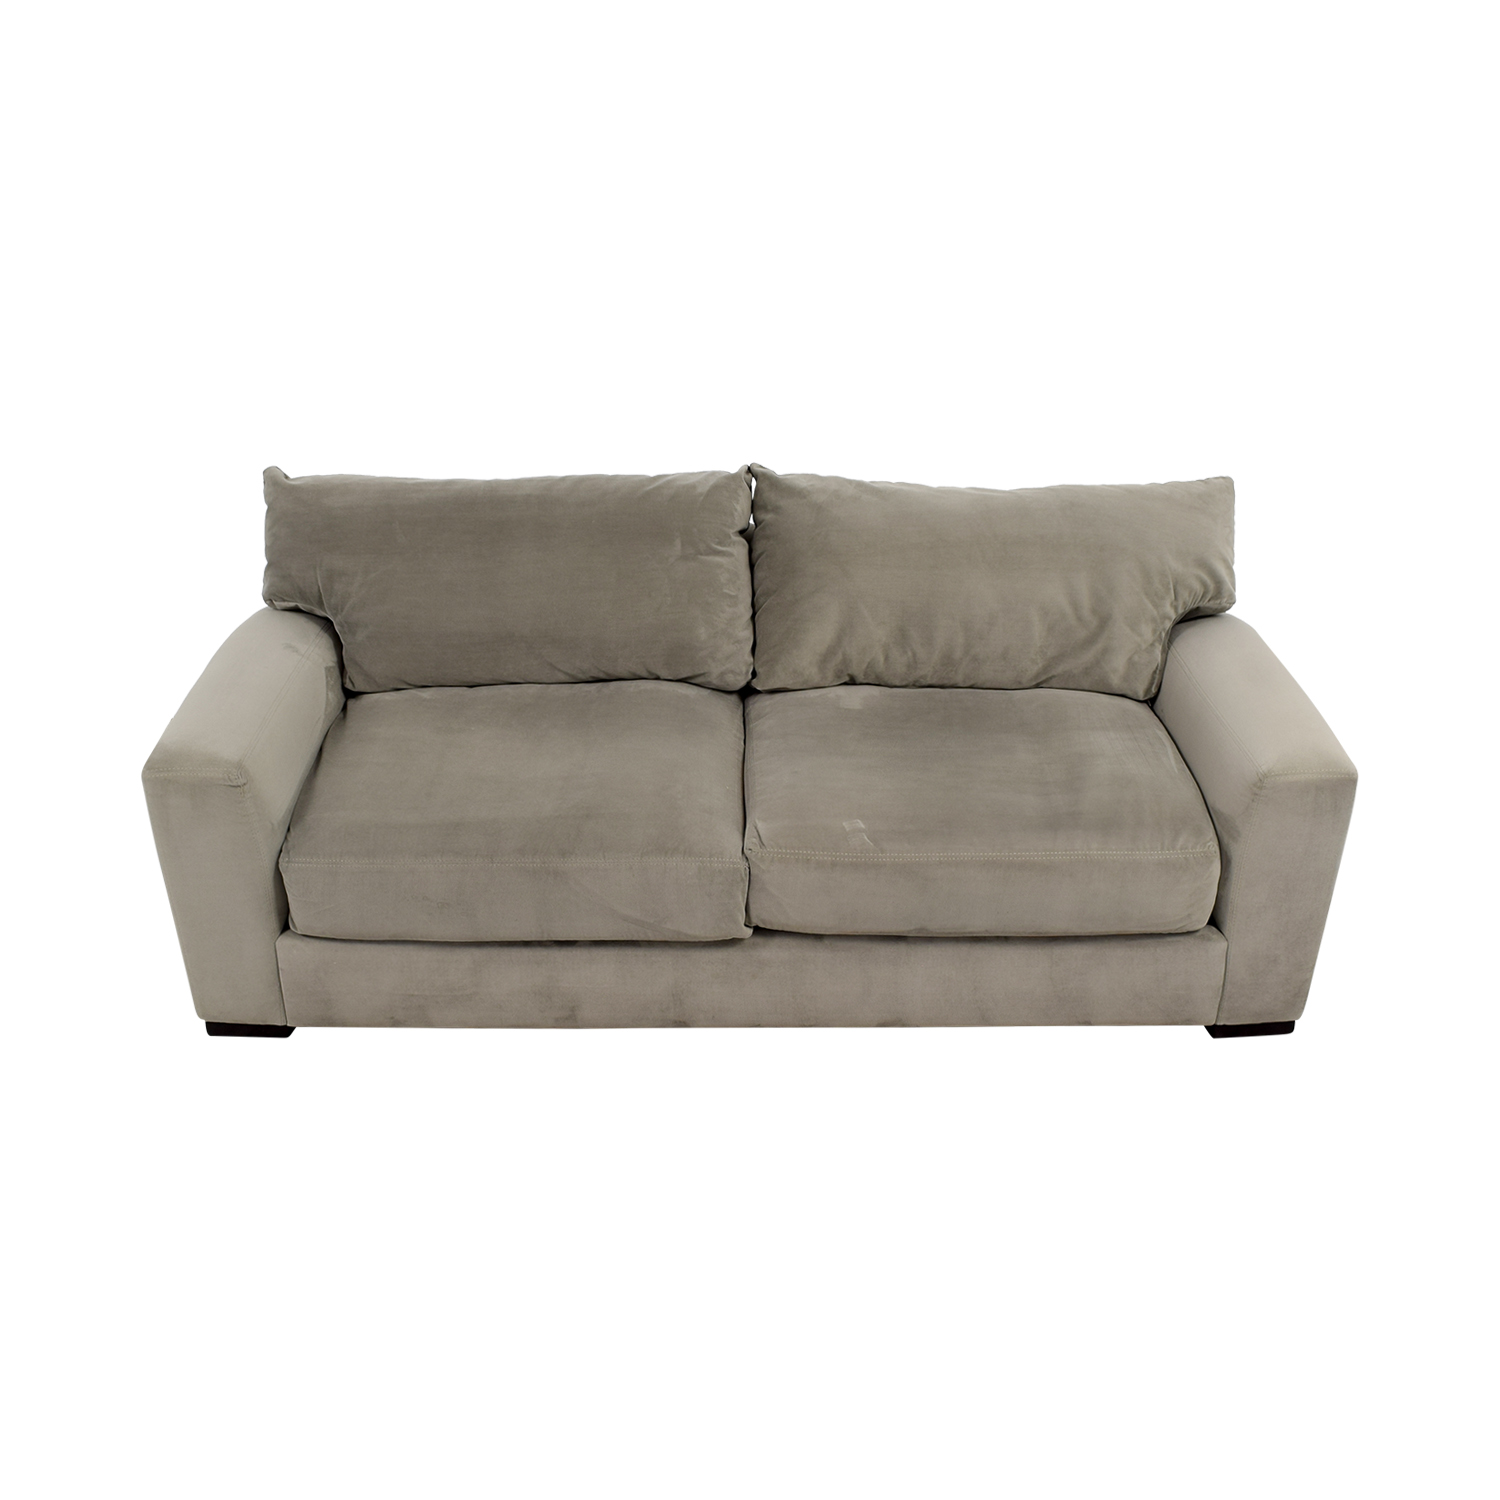 buy Raymour and Flanigan Grey Carlin Microfiber Sofa Raymour and Flanigan Classic Sofas